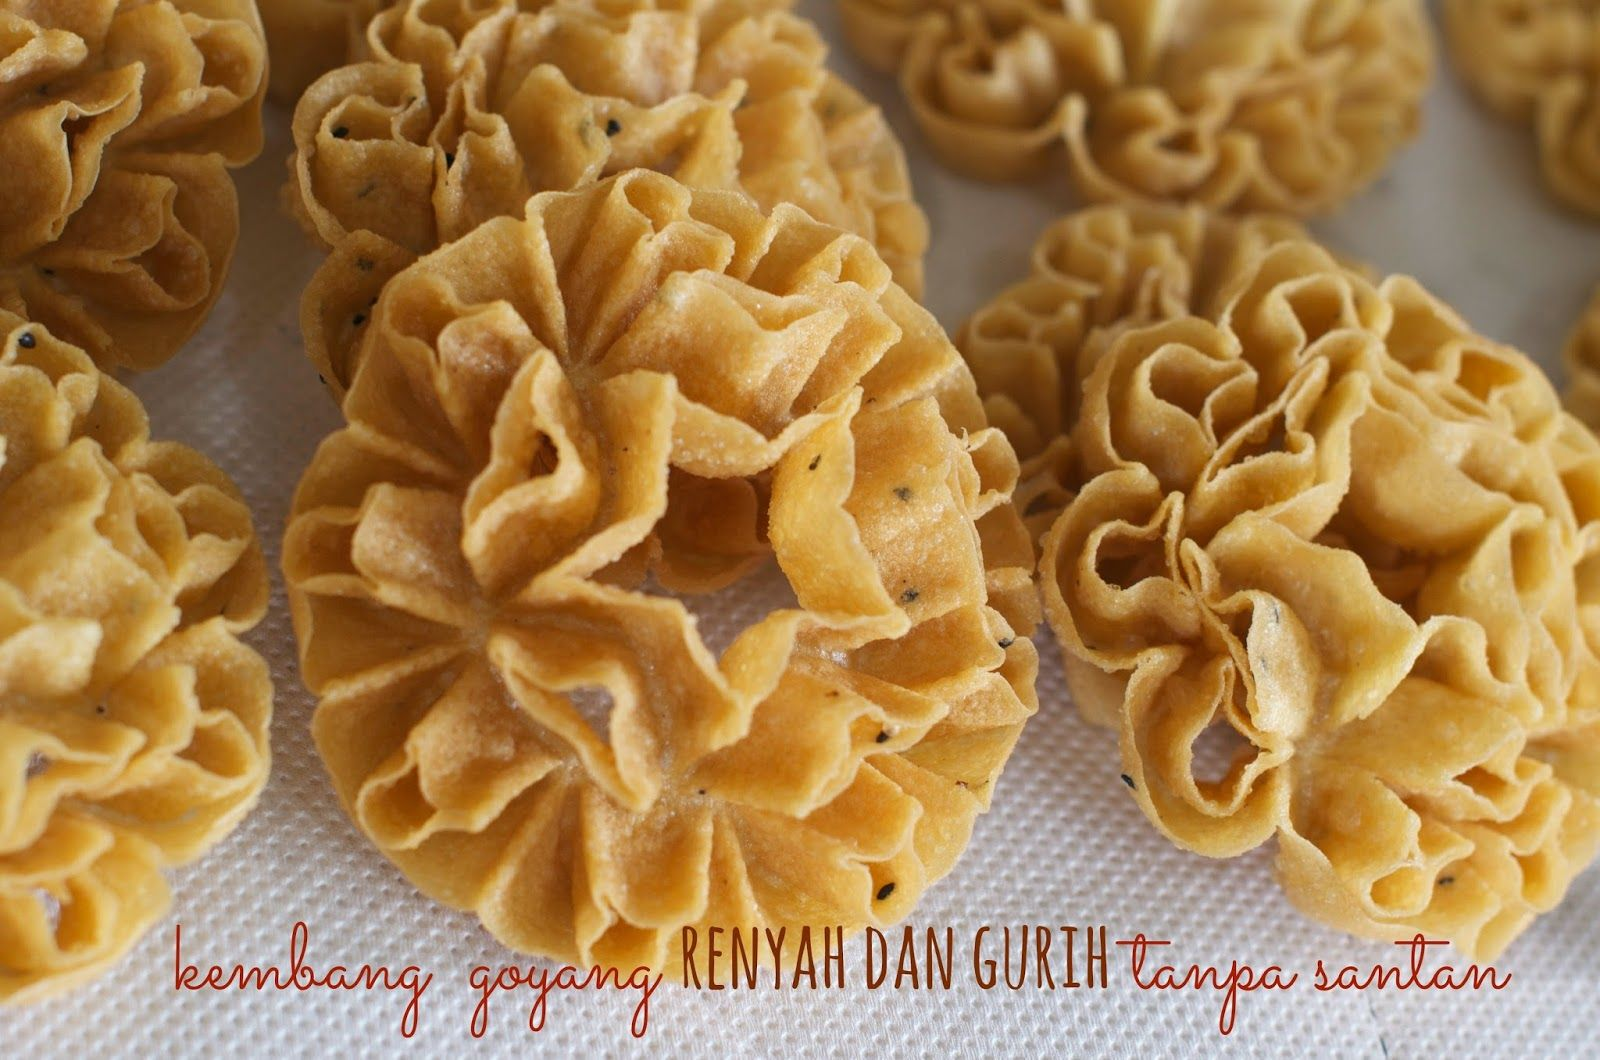 This Is One Of Many Indonesian Traditional Snack The Shape And How To Make It Gives This Snack Its Name Quot Kembang Goyang Quot The Makanan Cemilan Resep